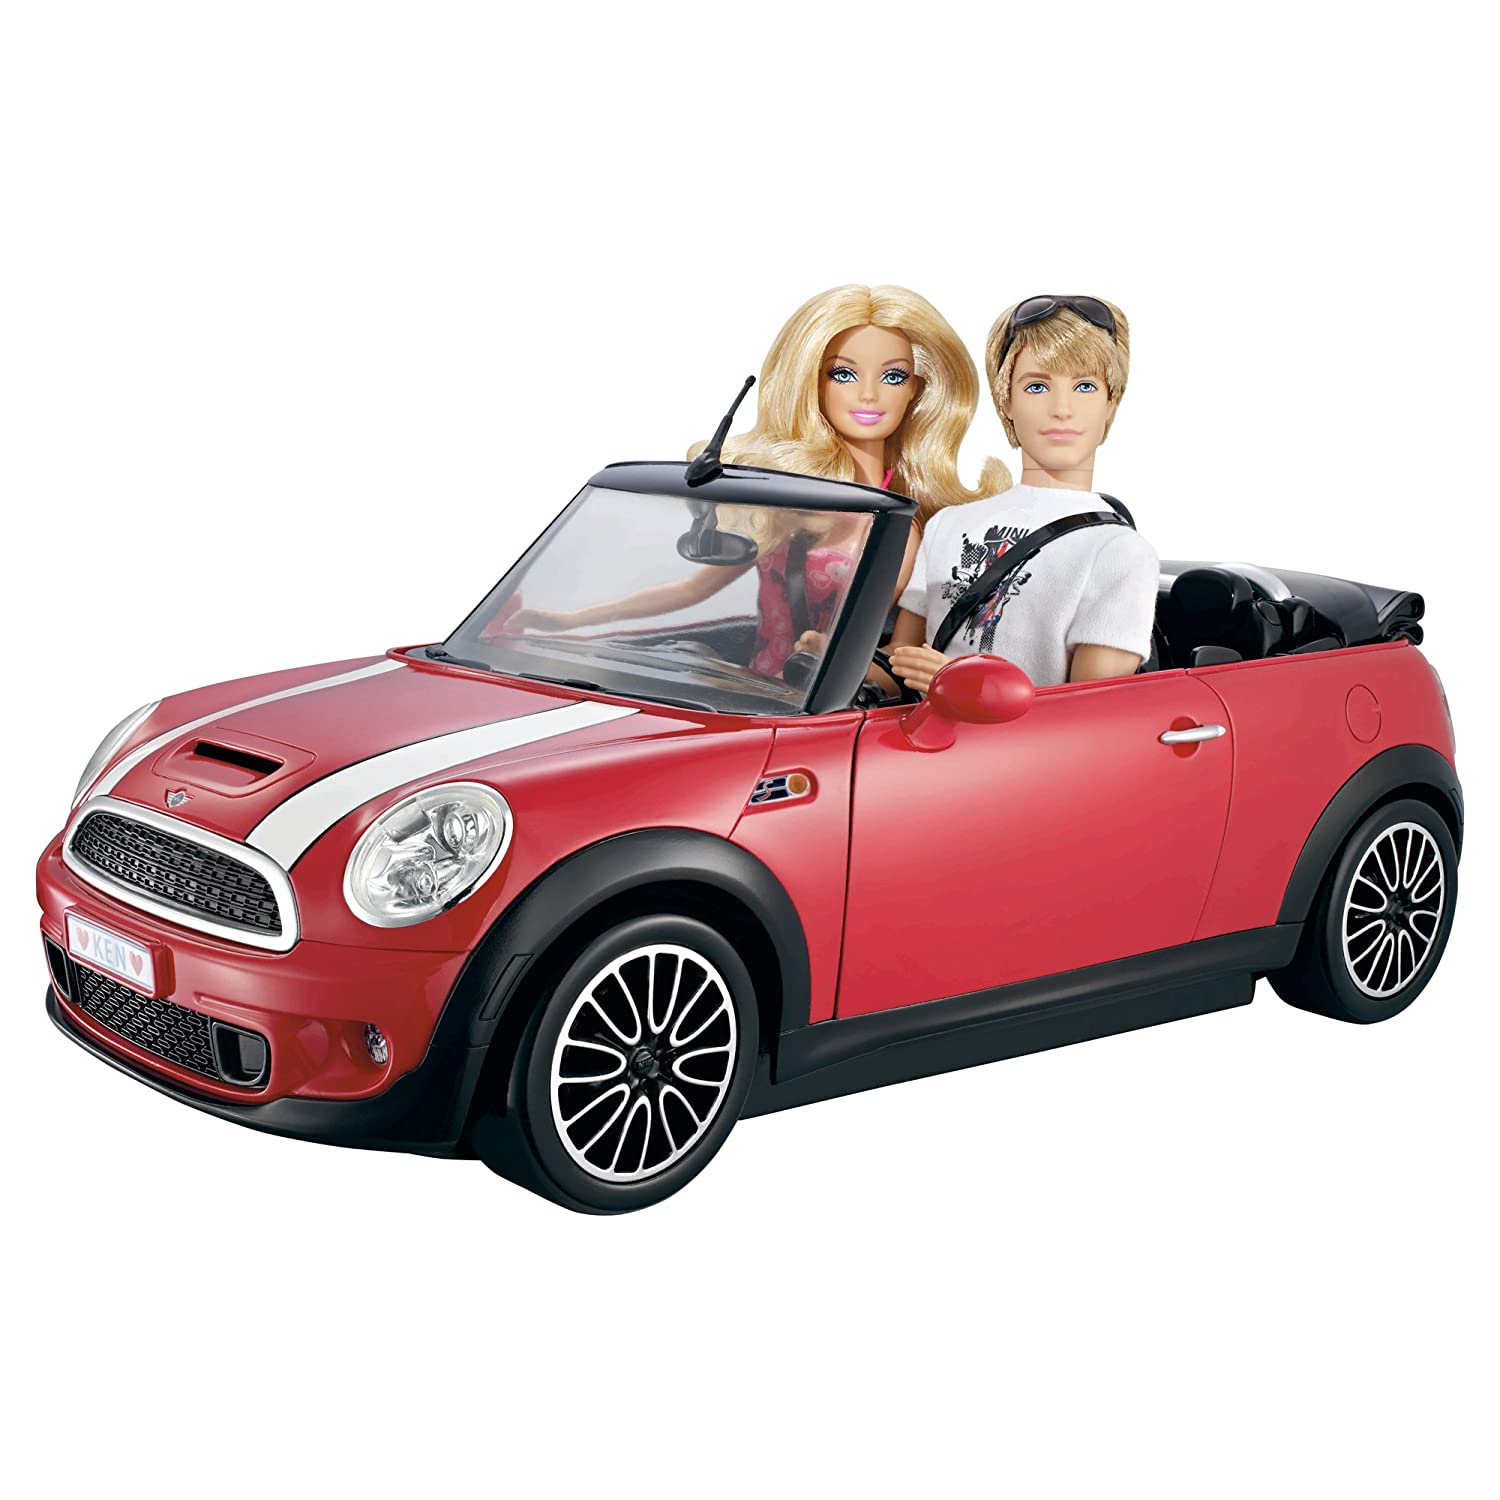 Barbie Ken My Cool Mini Cooper Convertible Red Car New